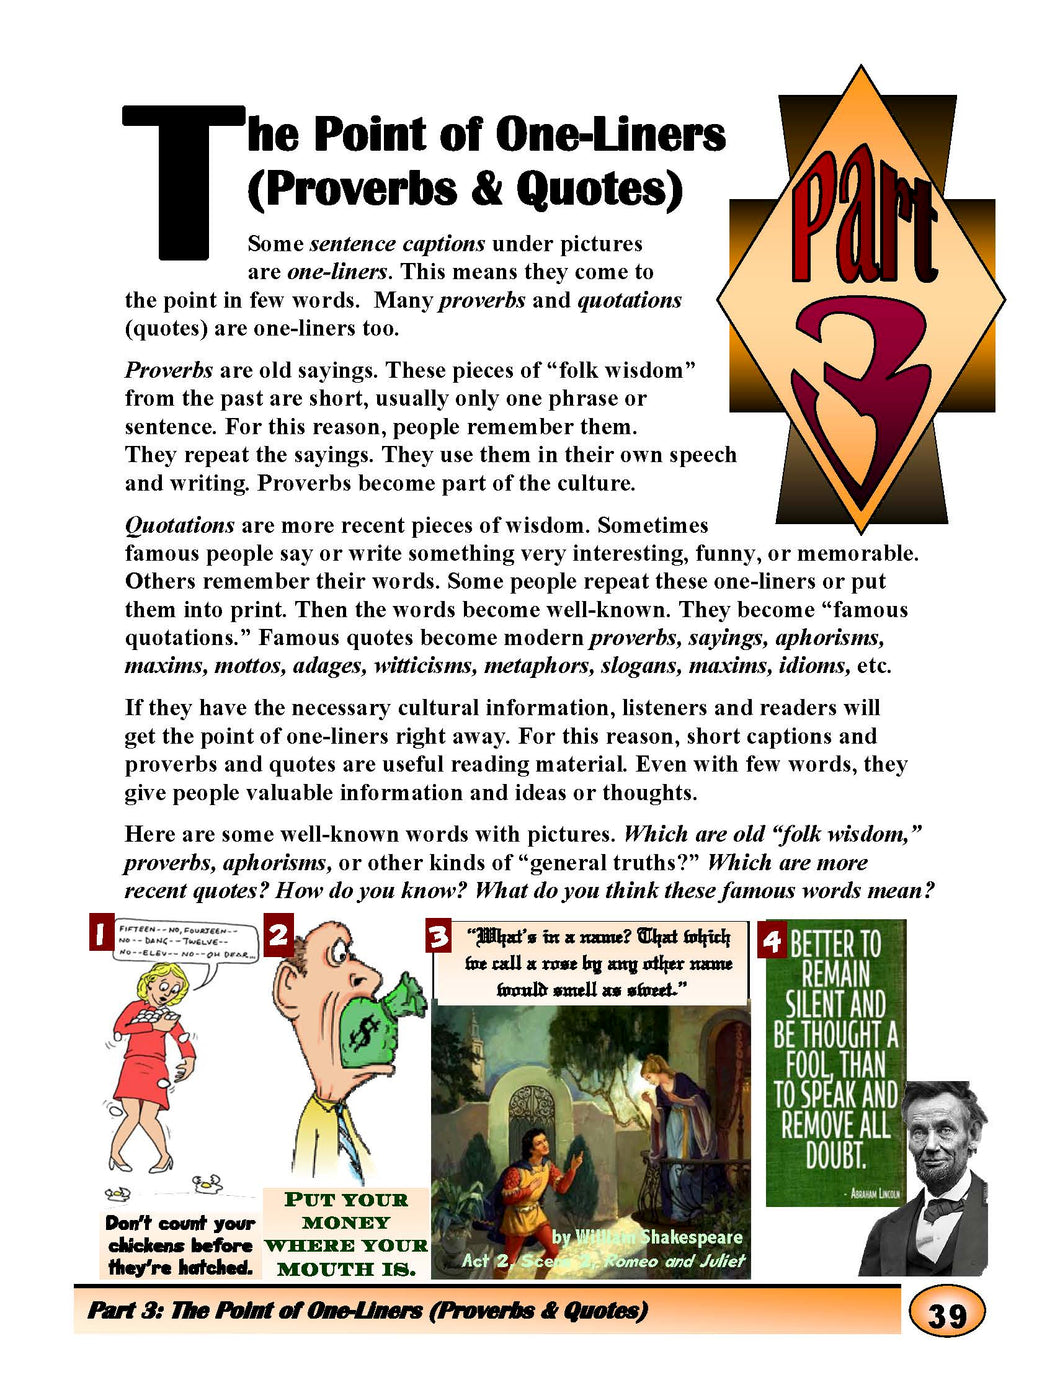 The Point of One-Liners(Proverbs&Quotes)